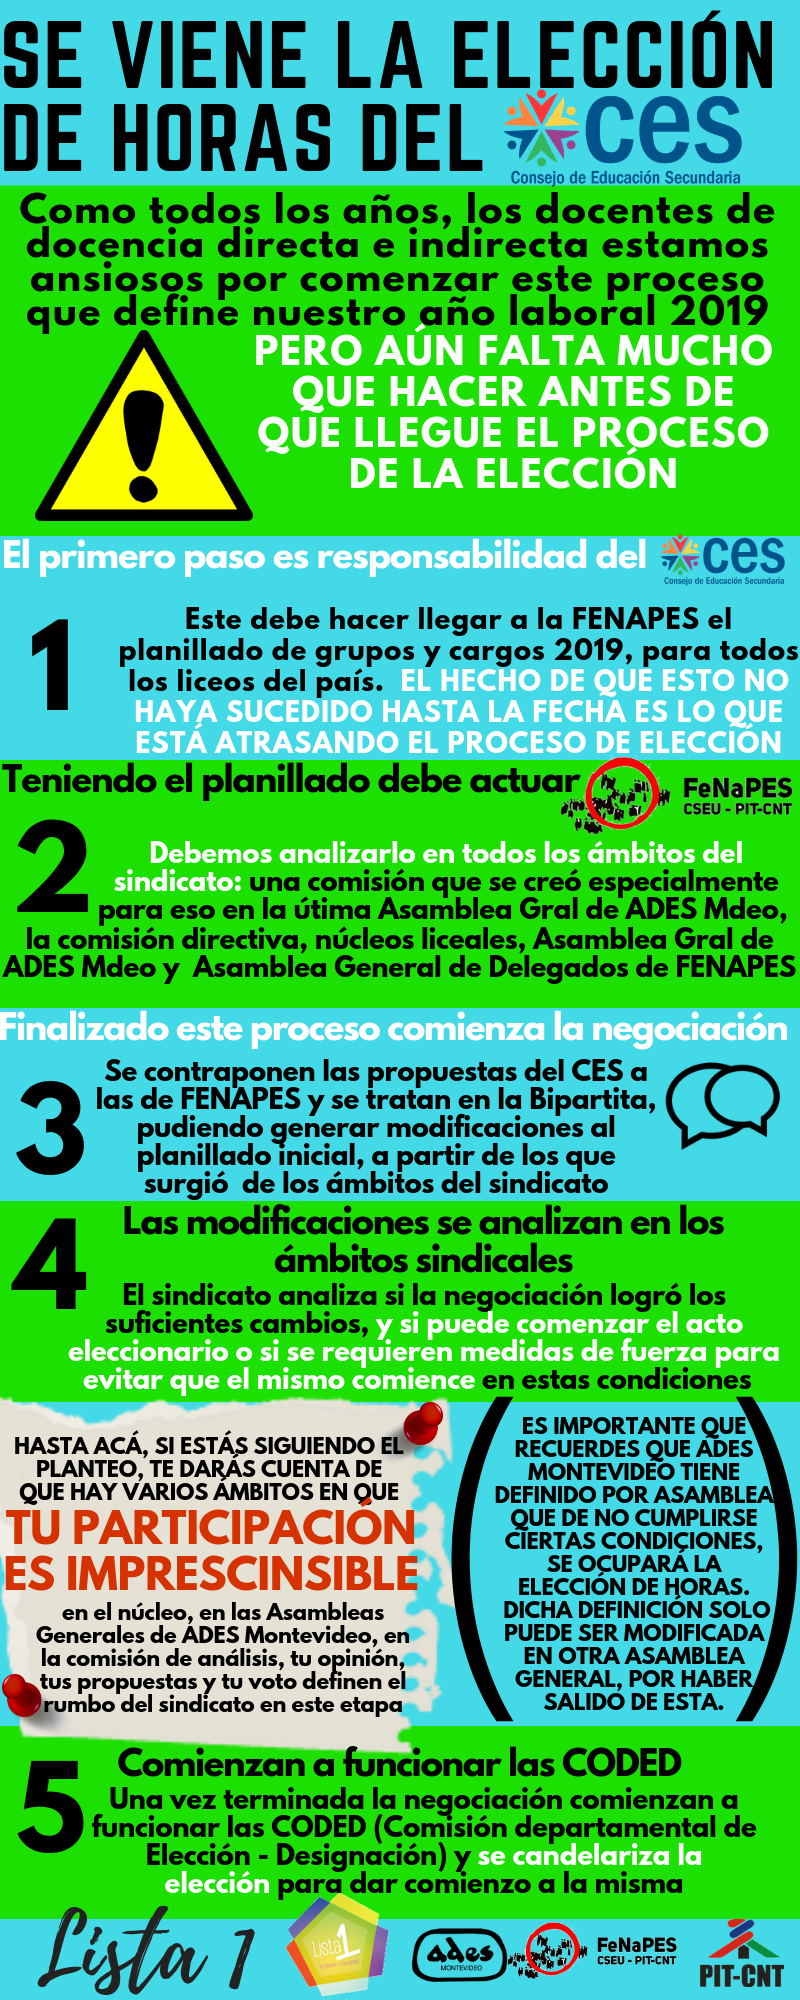 GraphicDesign (6).png